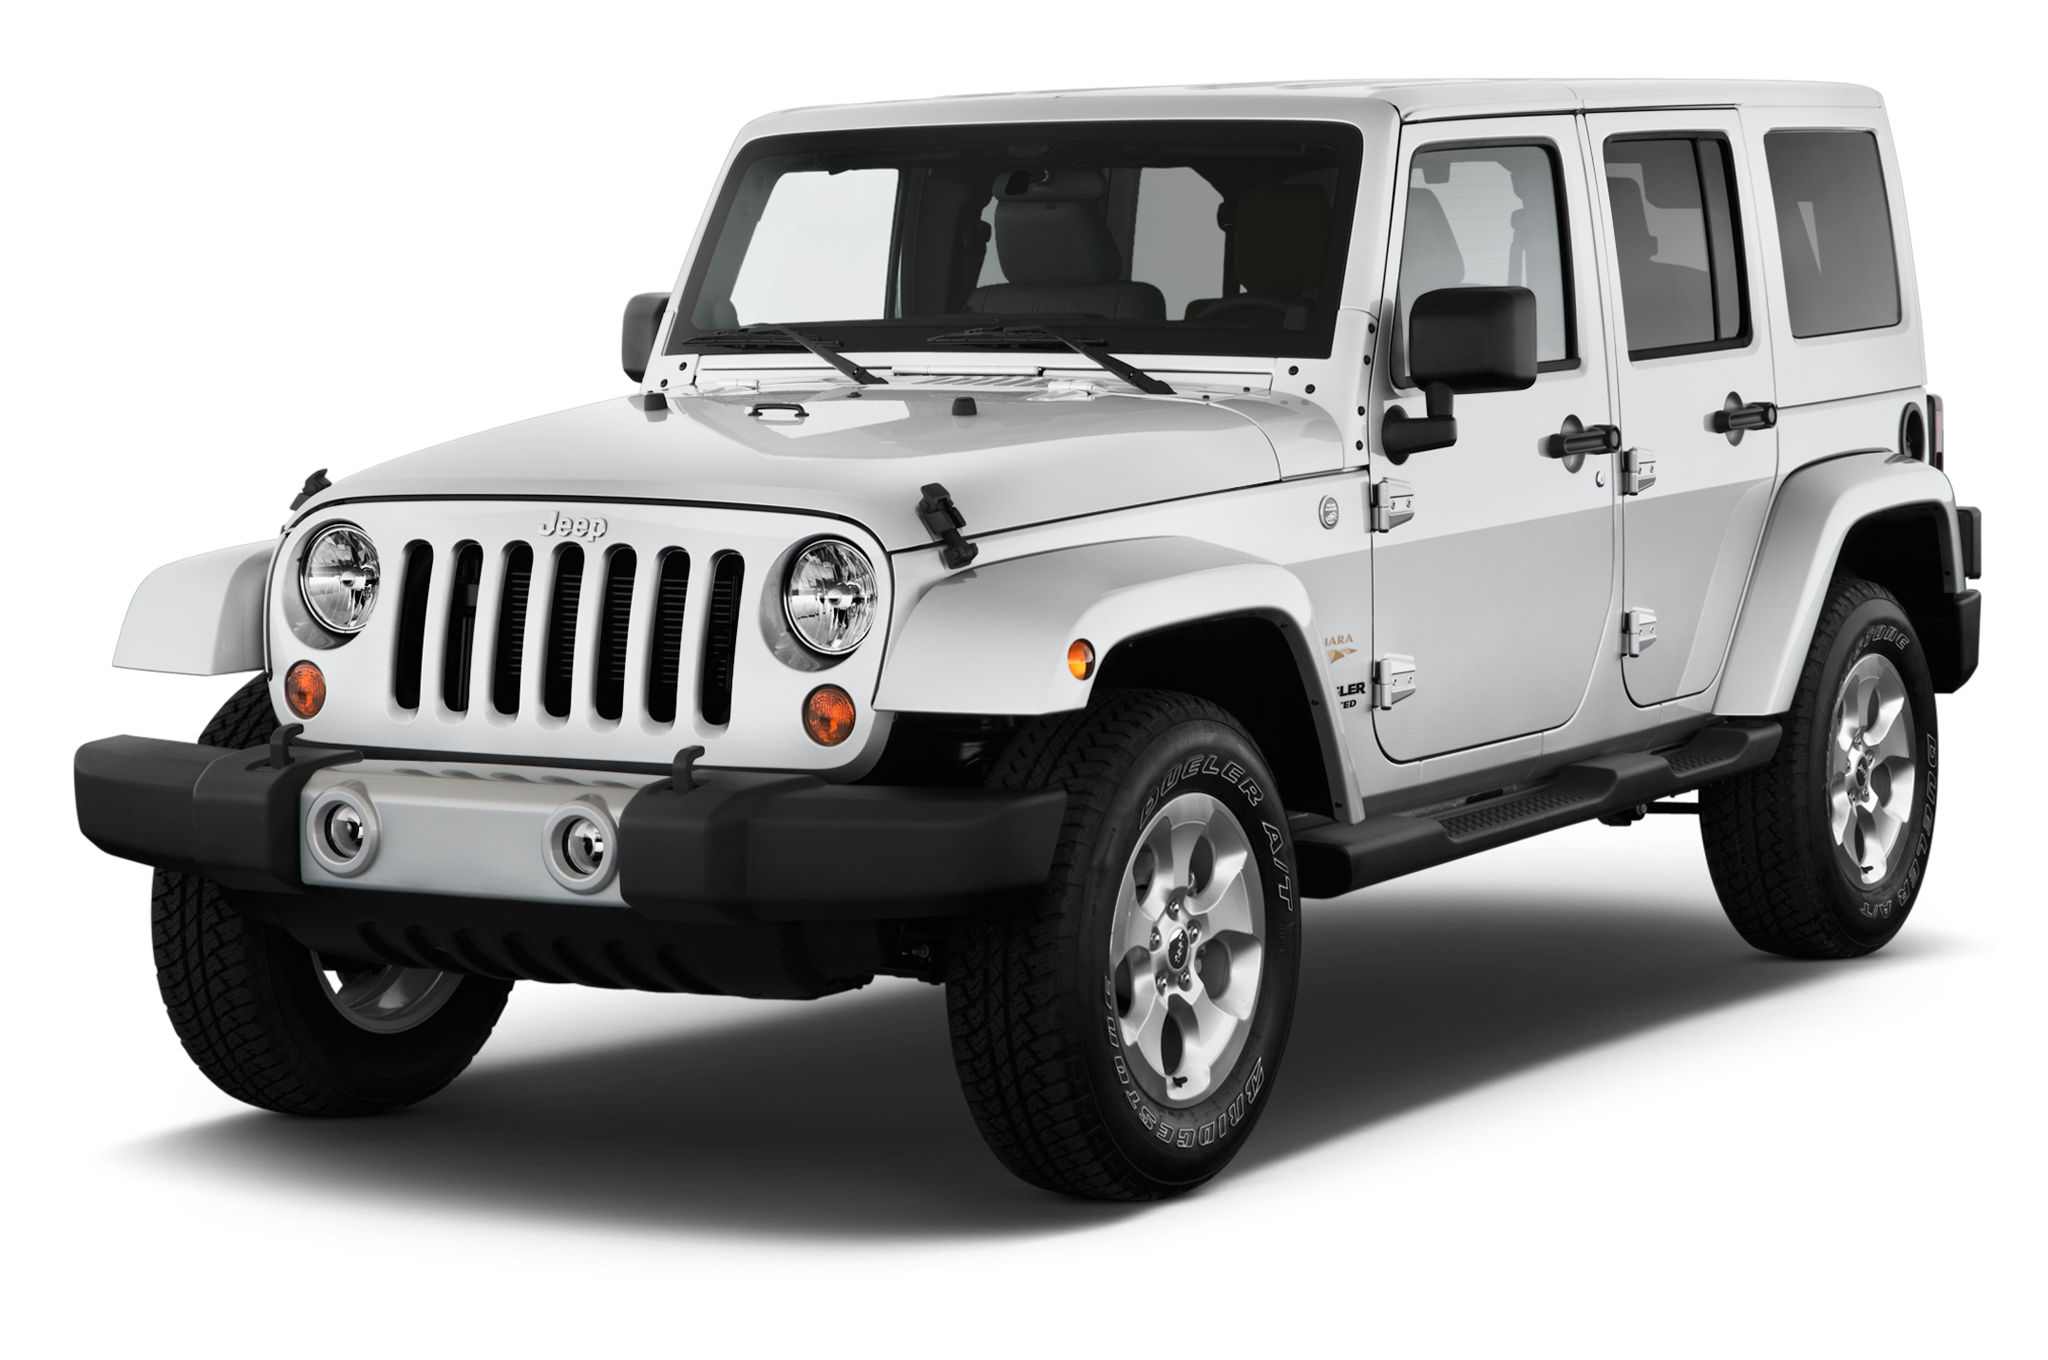 2016 jeep wrangler unlimited backcountry 4x4 review. Black Bedroom Furniture Sets. Home Design Ideas